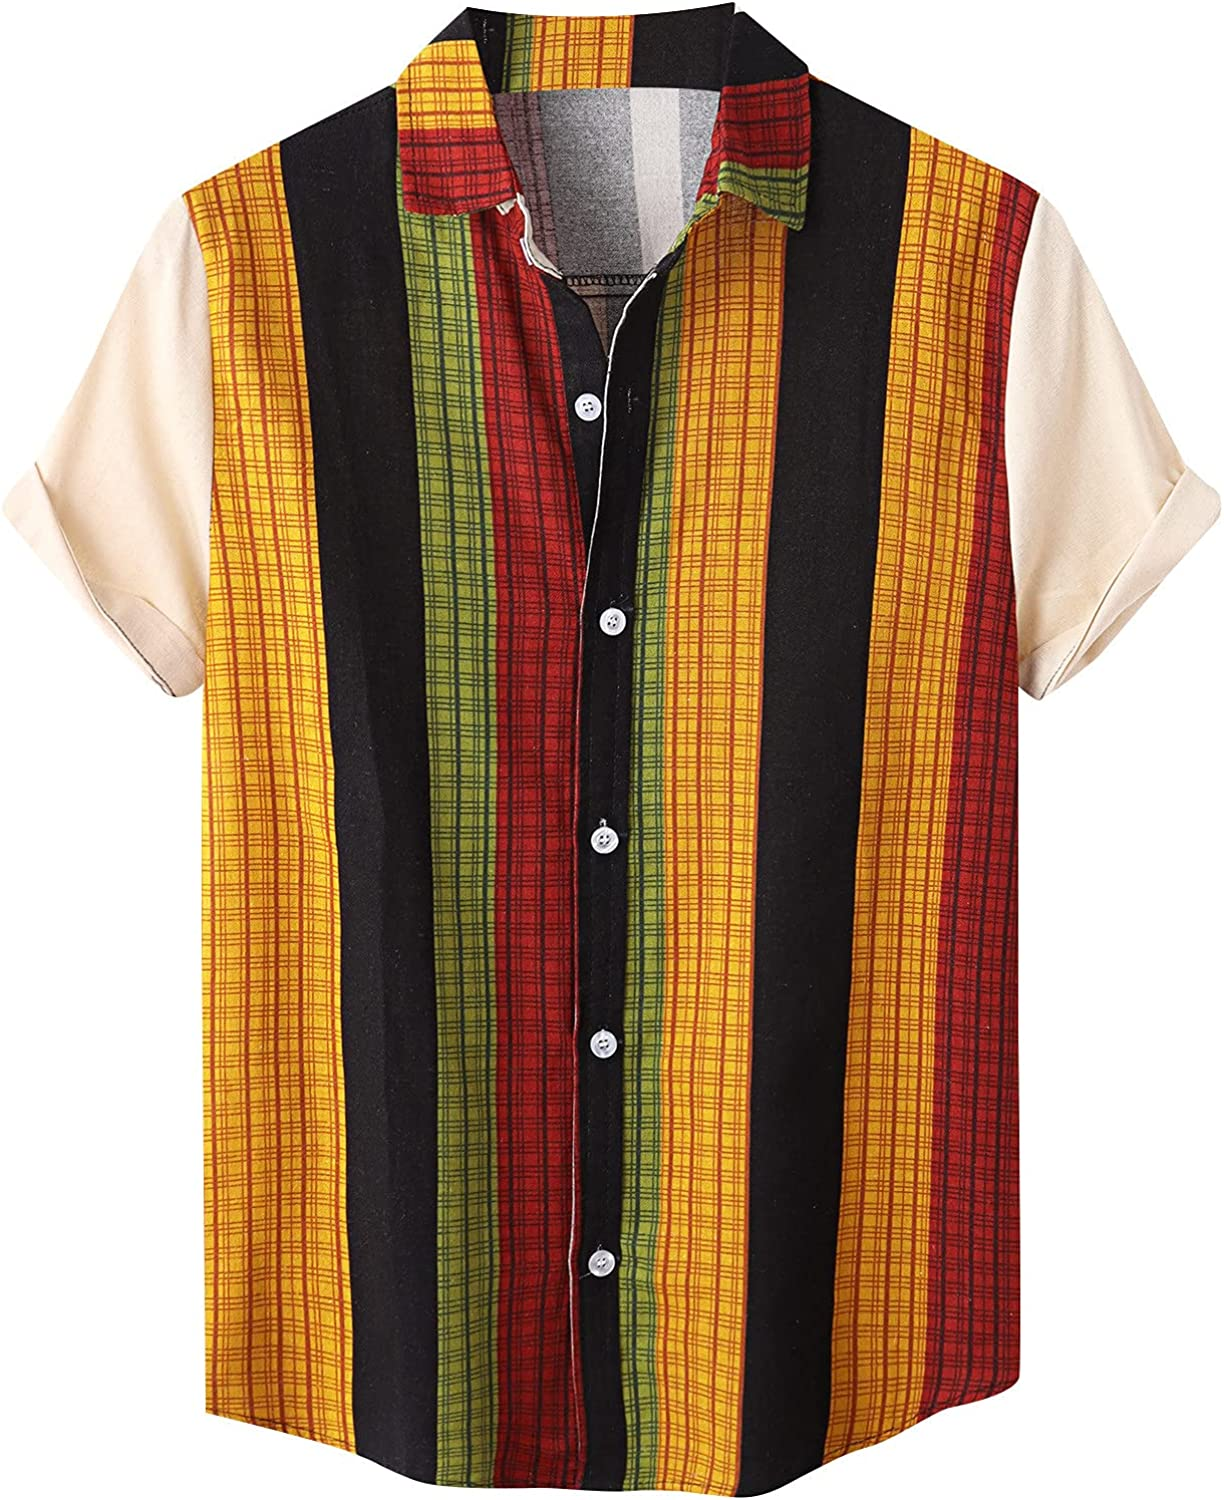 Mens Button Up Shirts Linen Tops Breathable Colorful Striped Print Shirt Loose Casual Short Sleeve Tee Shirt